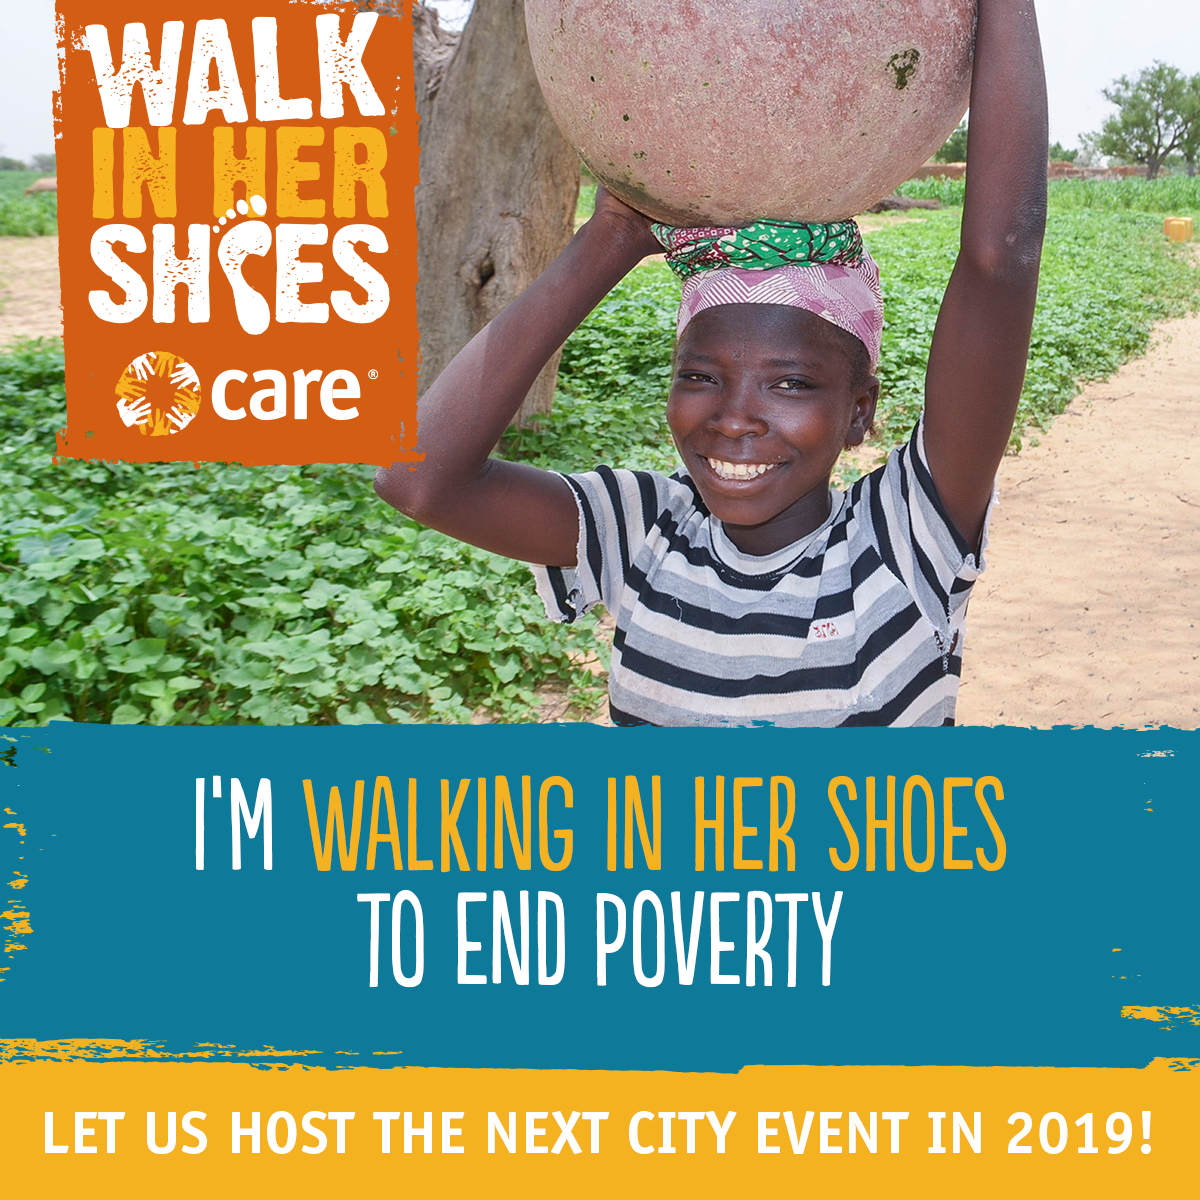 I'm walking in her shoes to end poverty!